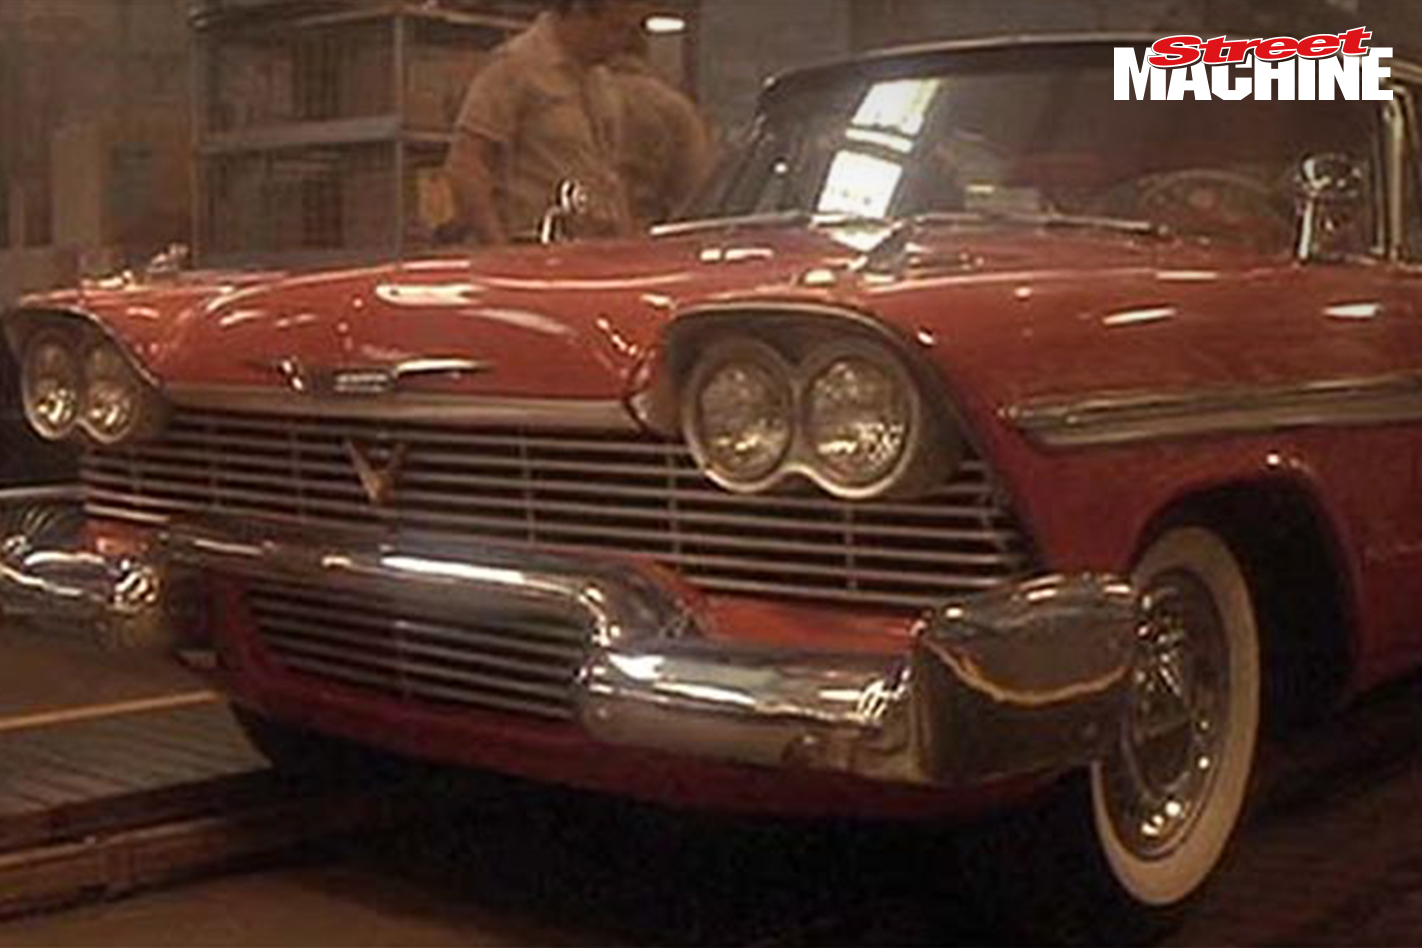 Christine 1983 Ripper Car Movies Street Machine